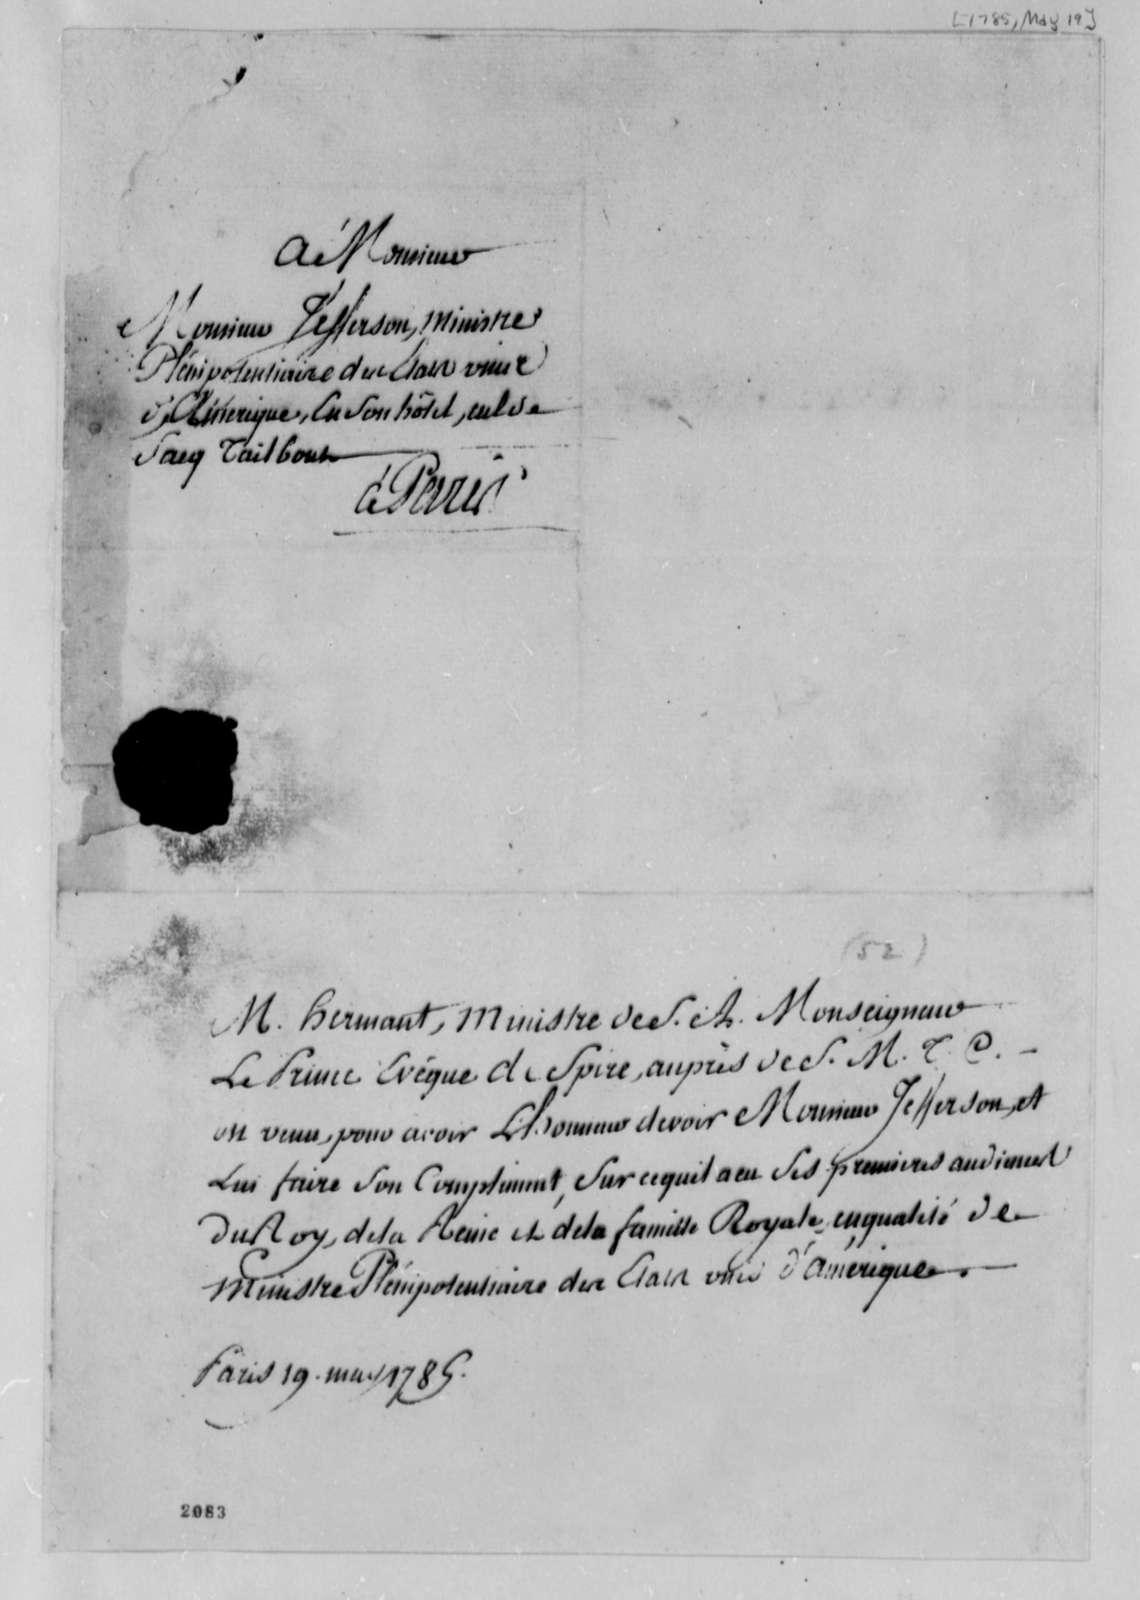 Hermant and Prince de Spire to Thomas Jefferson, May 19, 1785, in French